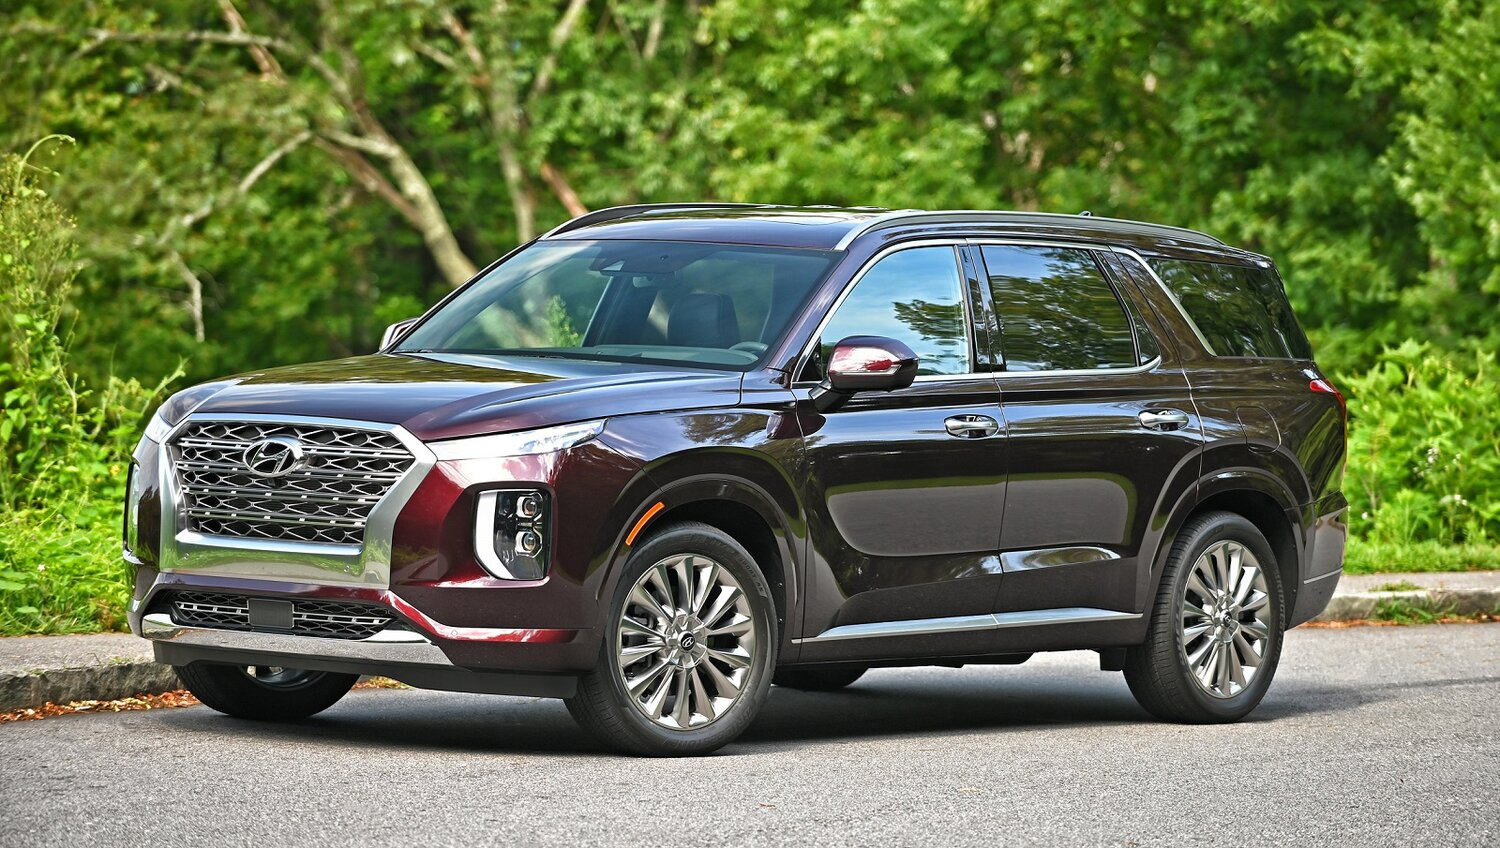 2021 Hyundai Palisade Australian Details And Specifications Auto Expert By John Cadogan Save Thousands On Your Next New Car